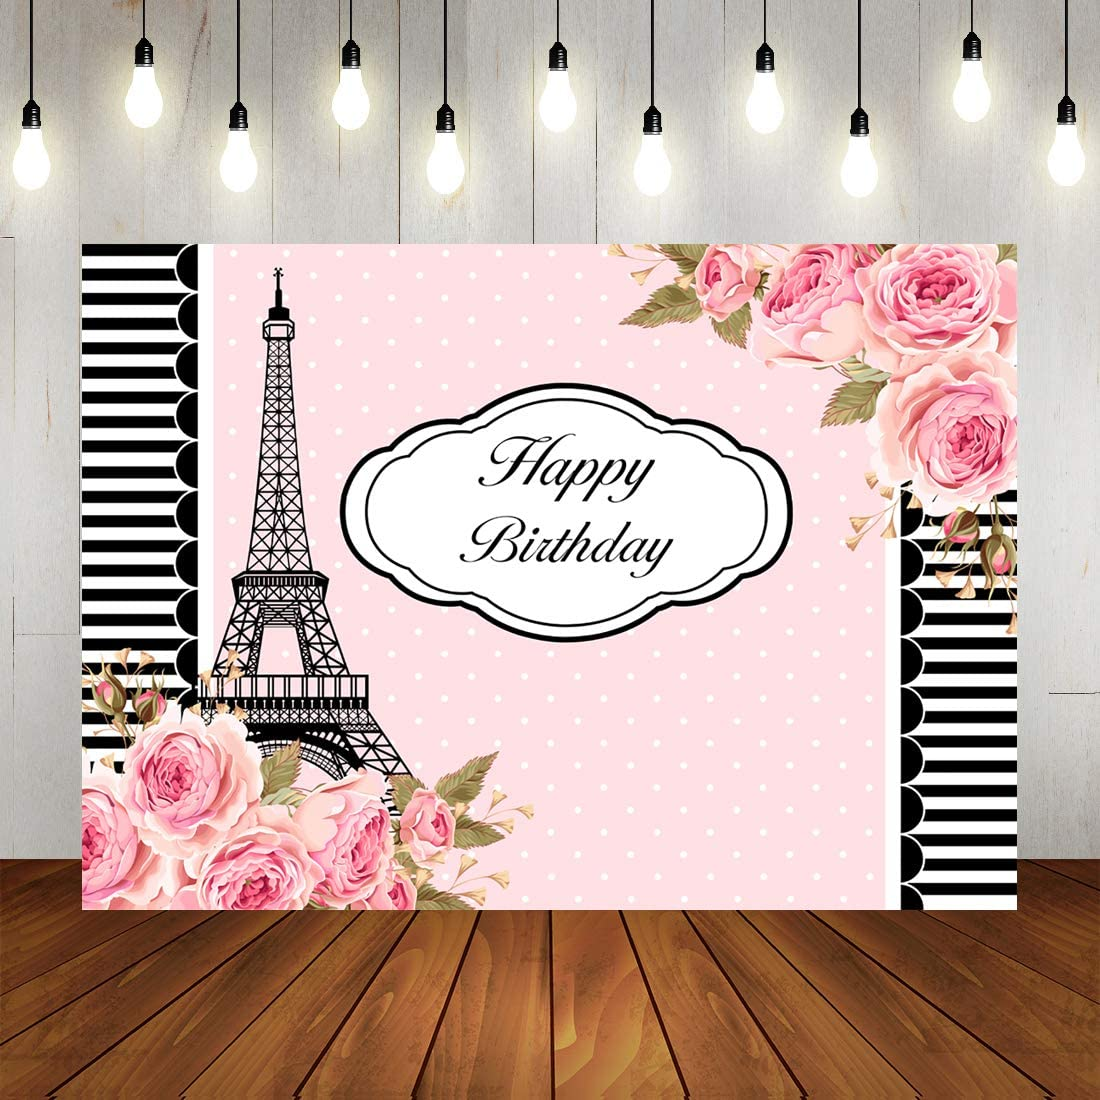 Pink Floral Happy Birthday Backdrop Paris Eiffel Tower Photography Background Black and White Stripes Decorations for Baby Girl's Birthday Party 7x5ft Any Age Women's Birthday Party Photo Booth Props